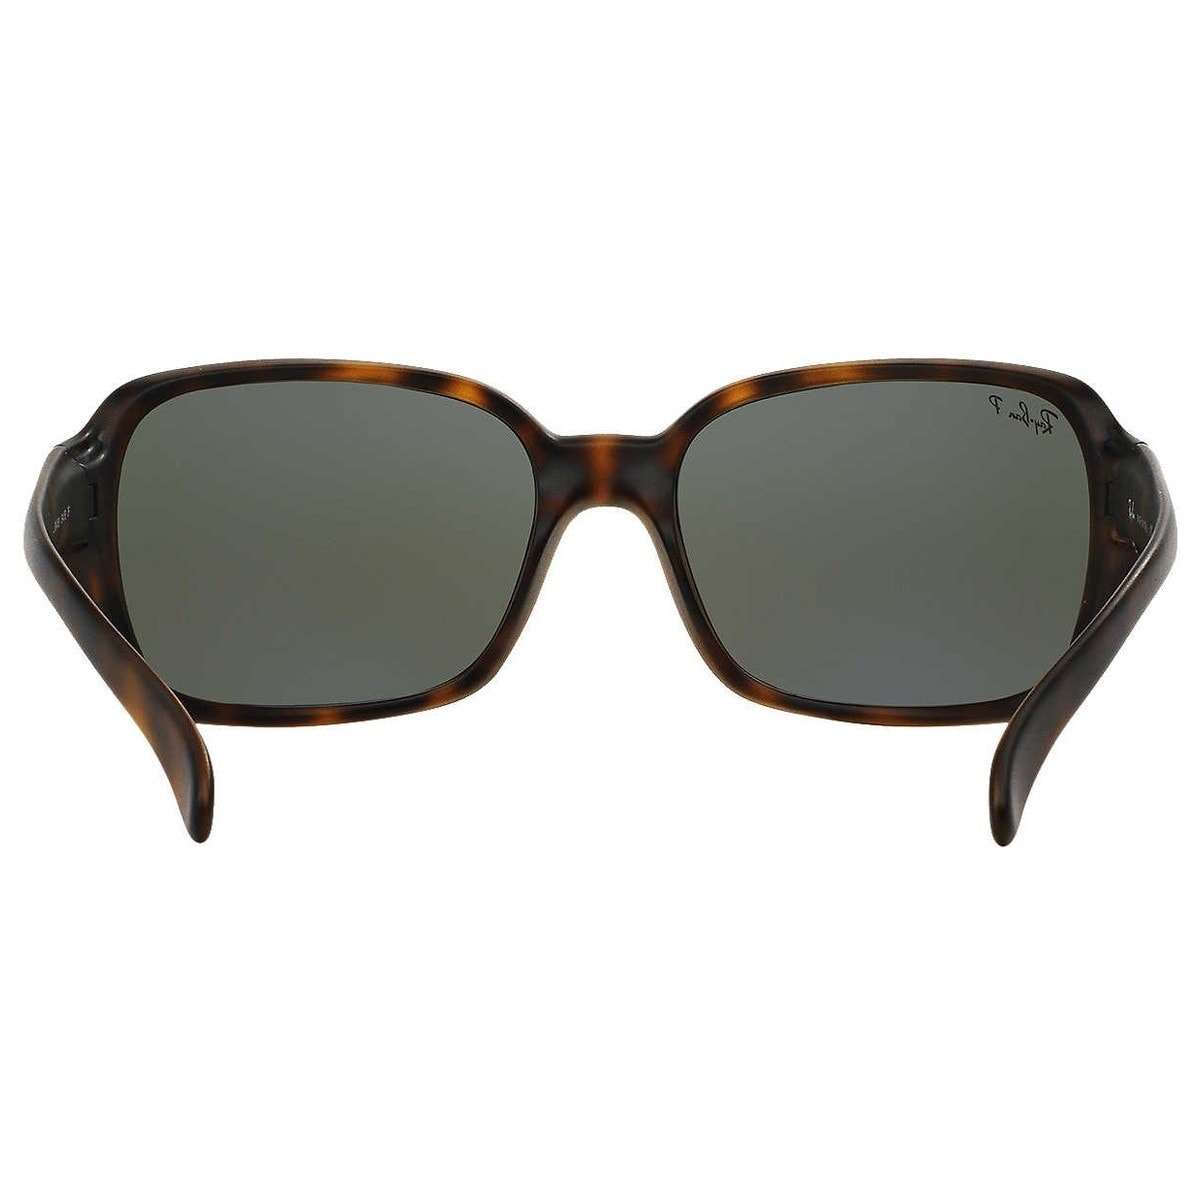 12aecdbb6a Shop Ray-Ban RB4068 894 58 Tortoise Frame Polarized Green 60mm Lens  Sunglasses - Free Shipping Today - Overstock - 14431334